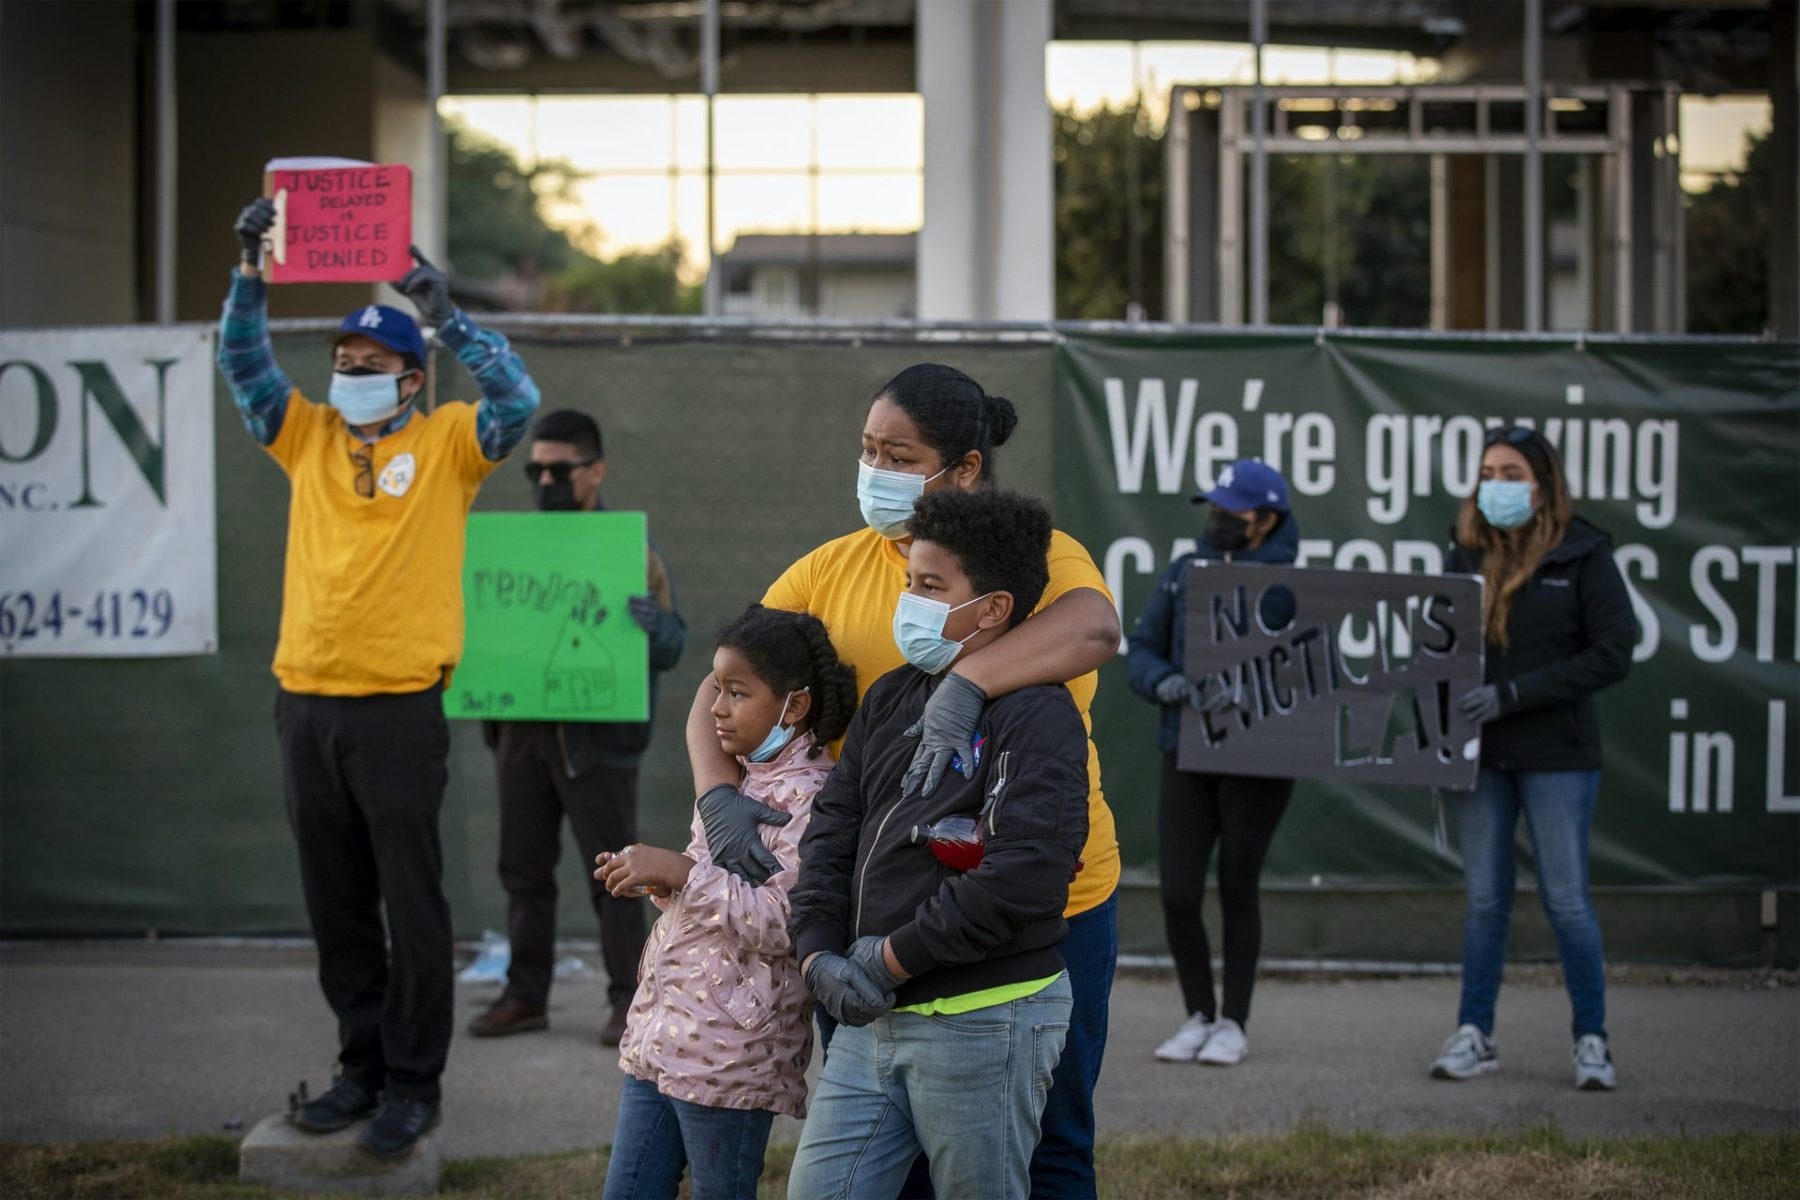 A woman stands with her two kids at a protest.